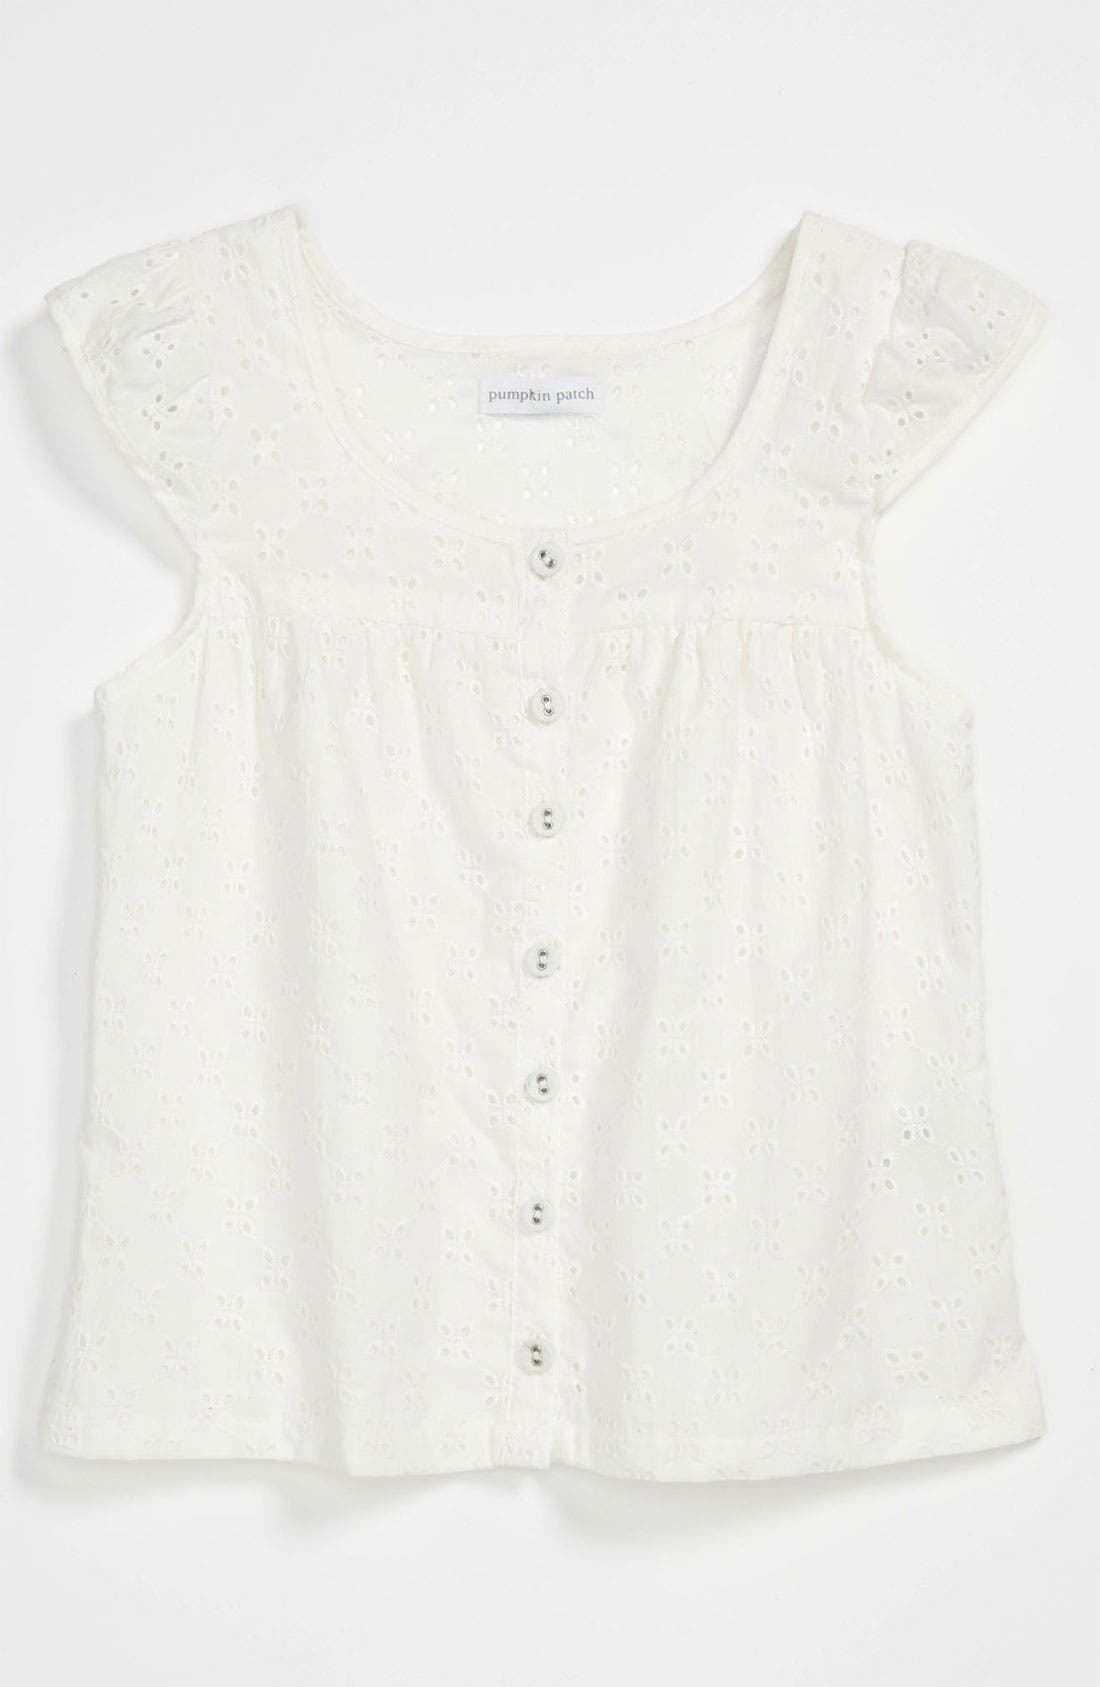 Alternate Image 1 Selected - Pumpkin Patch 'Anglaise' Eyelet Lace Top (Little Girls & Big Girls)